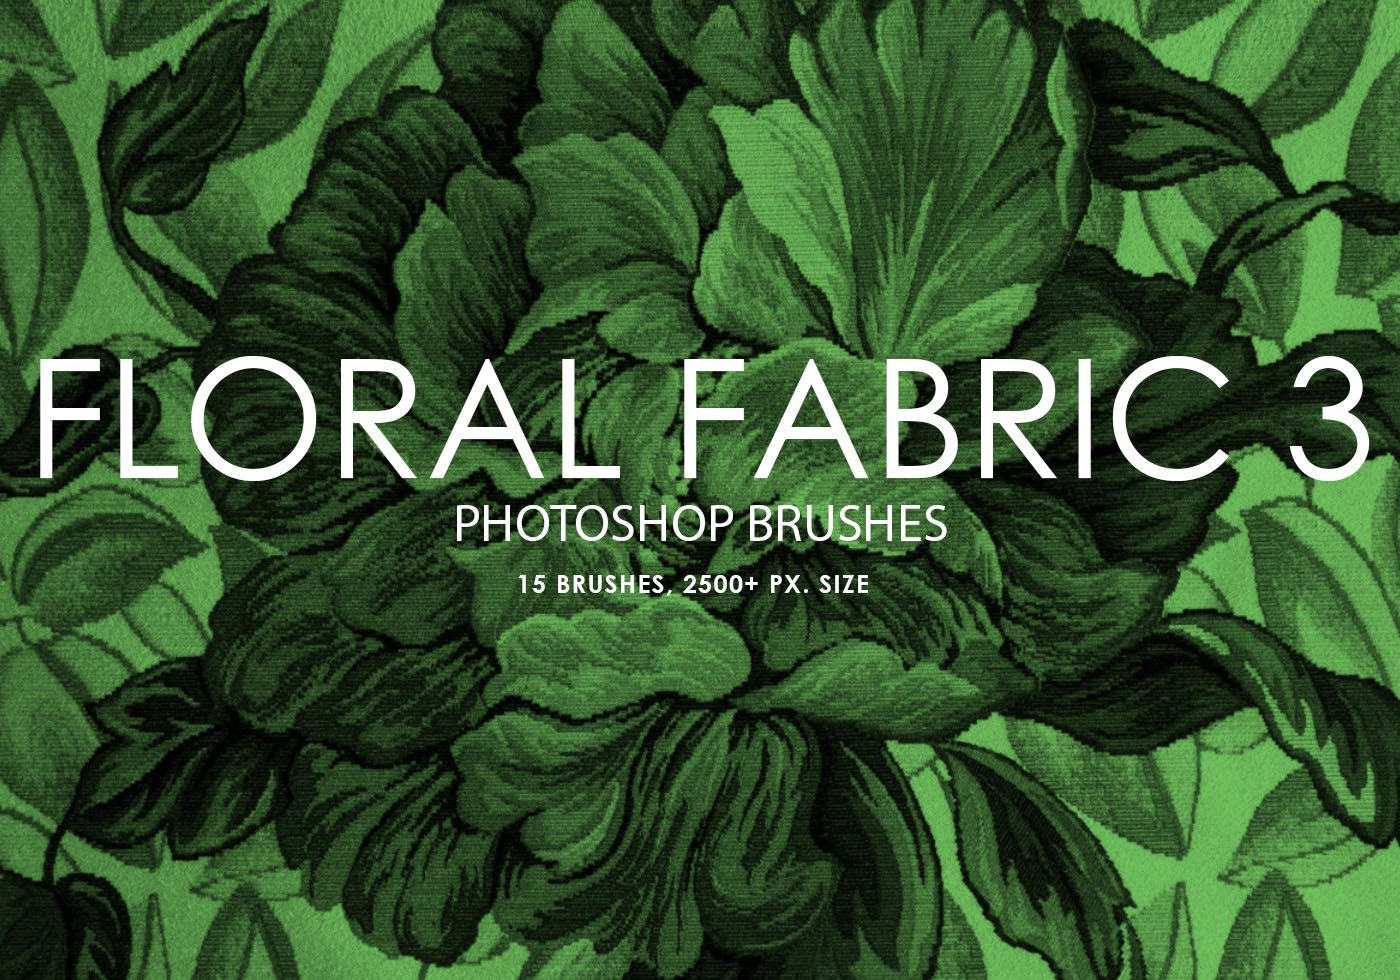 free floral fabric photoshop brushes